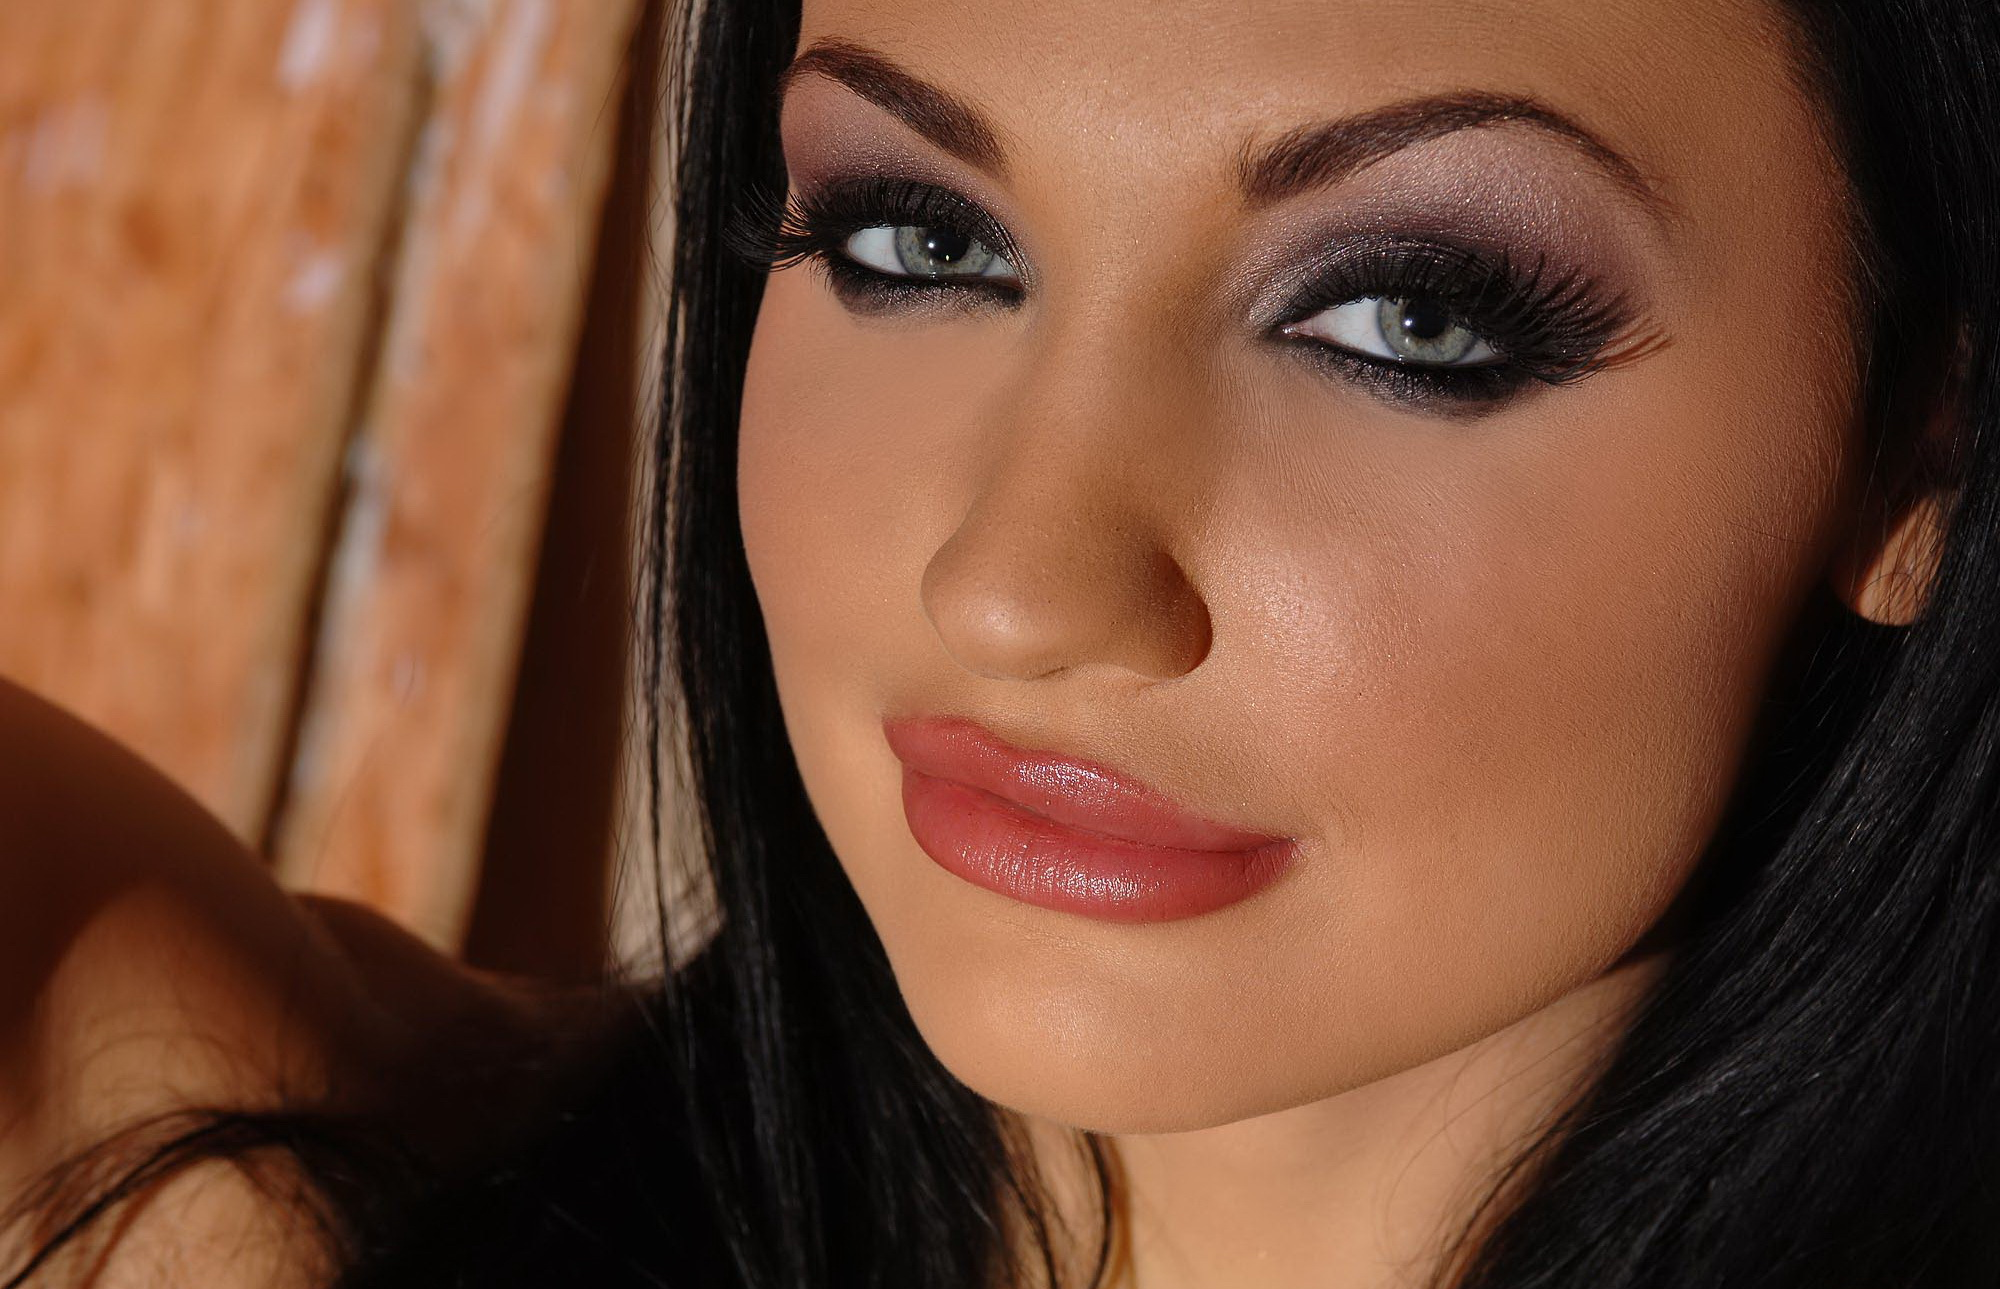 Aletta Ocean Wallpapers Images Photos Pictures Backgrounds